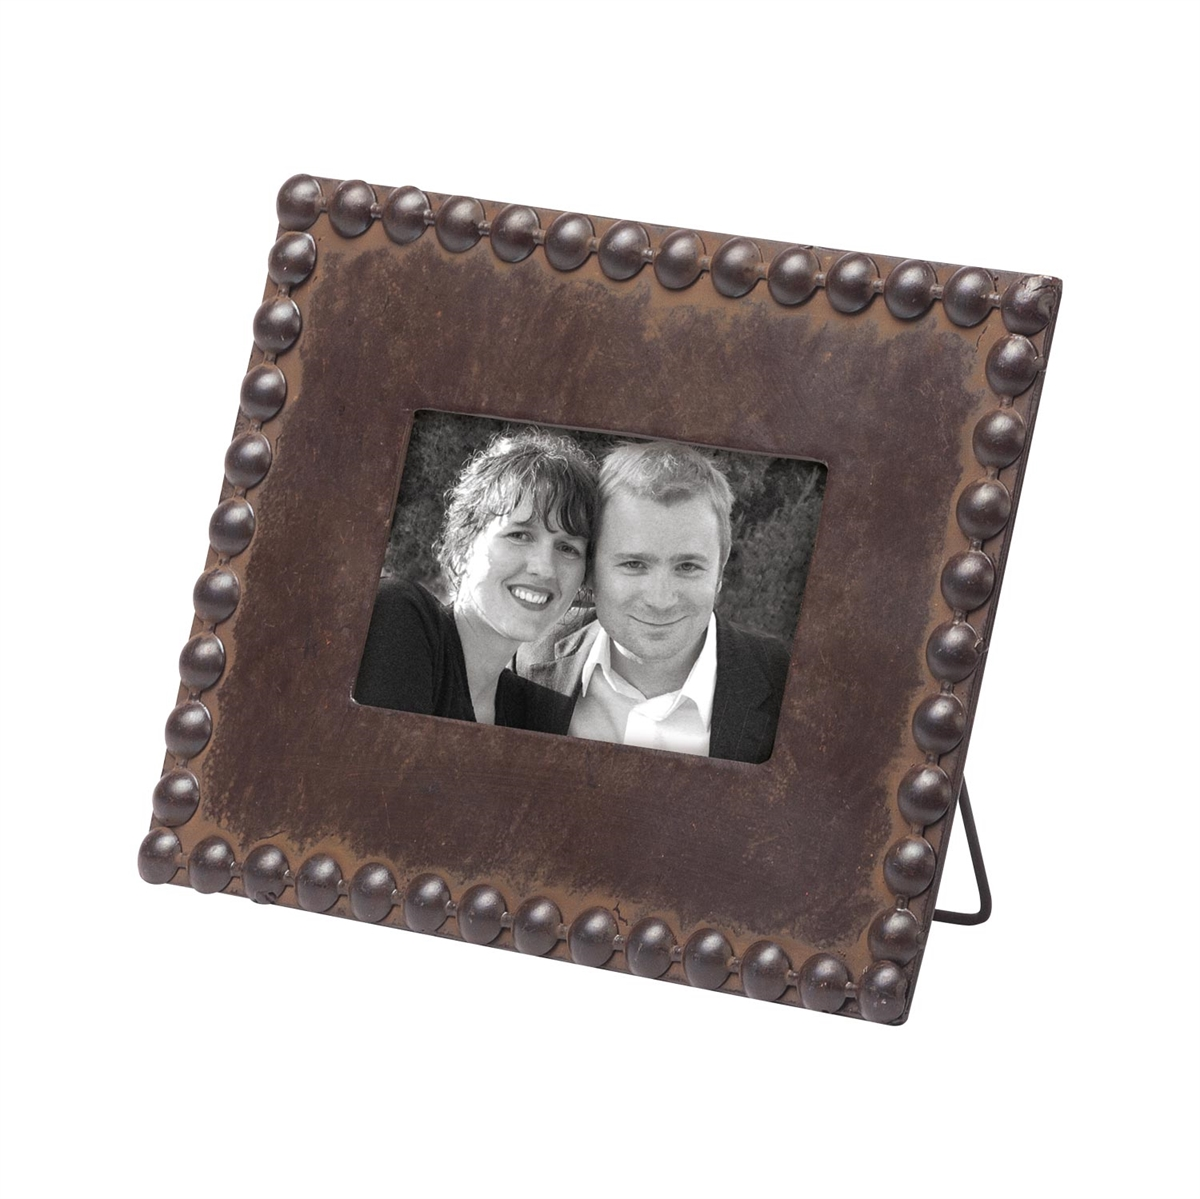 Beaded Picture Frame 4x6, Natural Photo Frame | Plum & Post